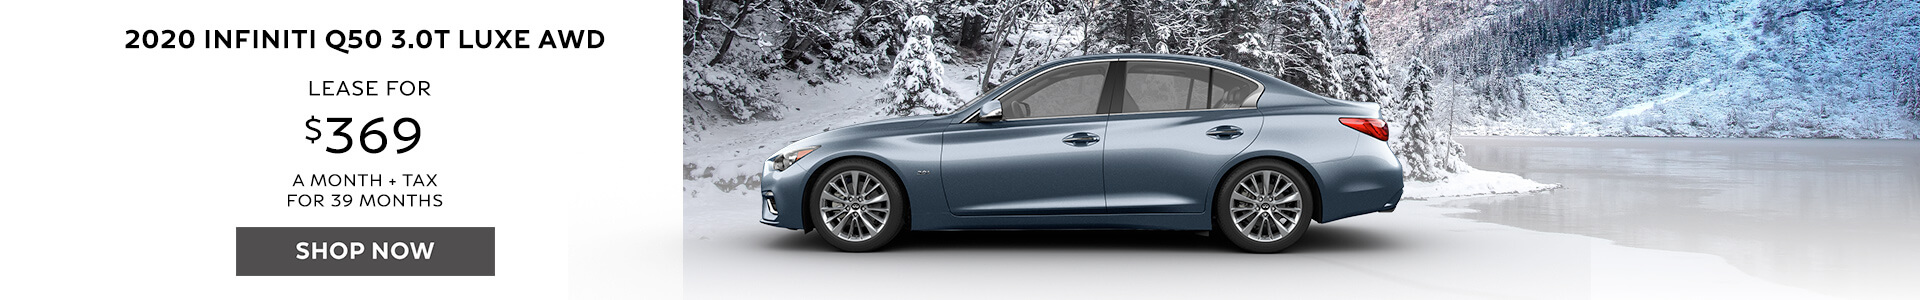 Q50 LUXE - Lease for $369